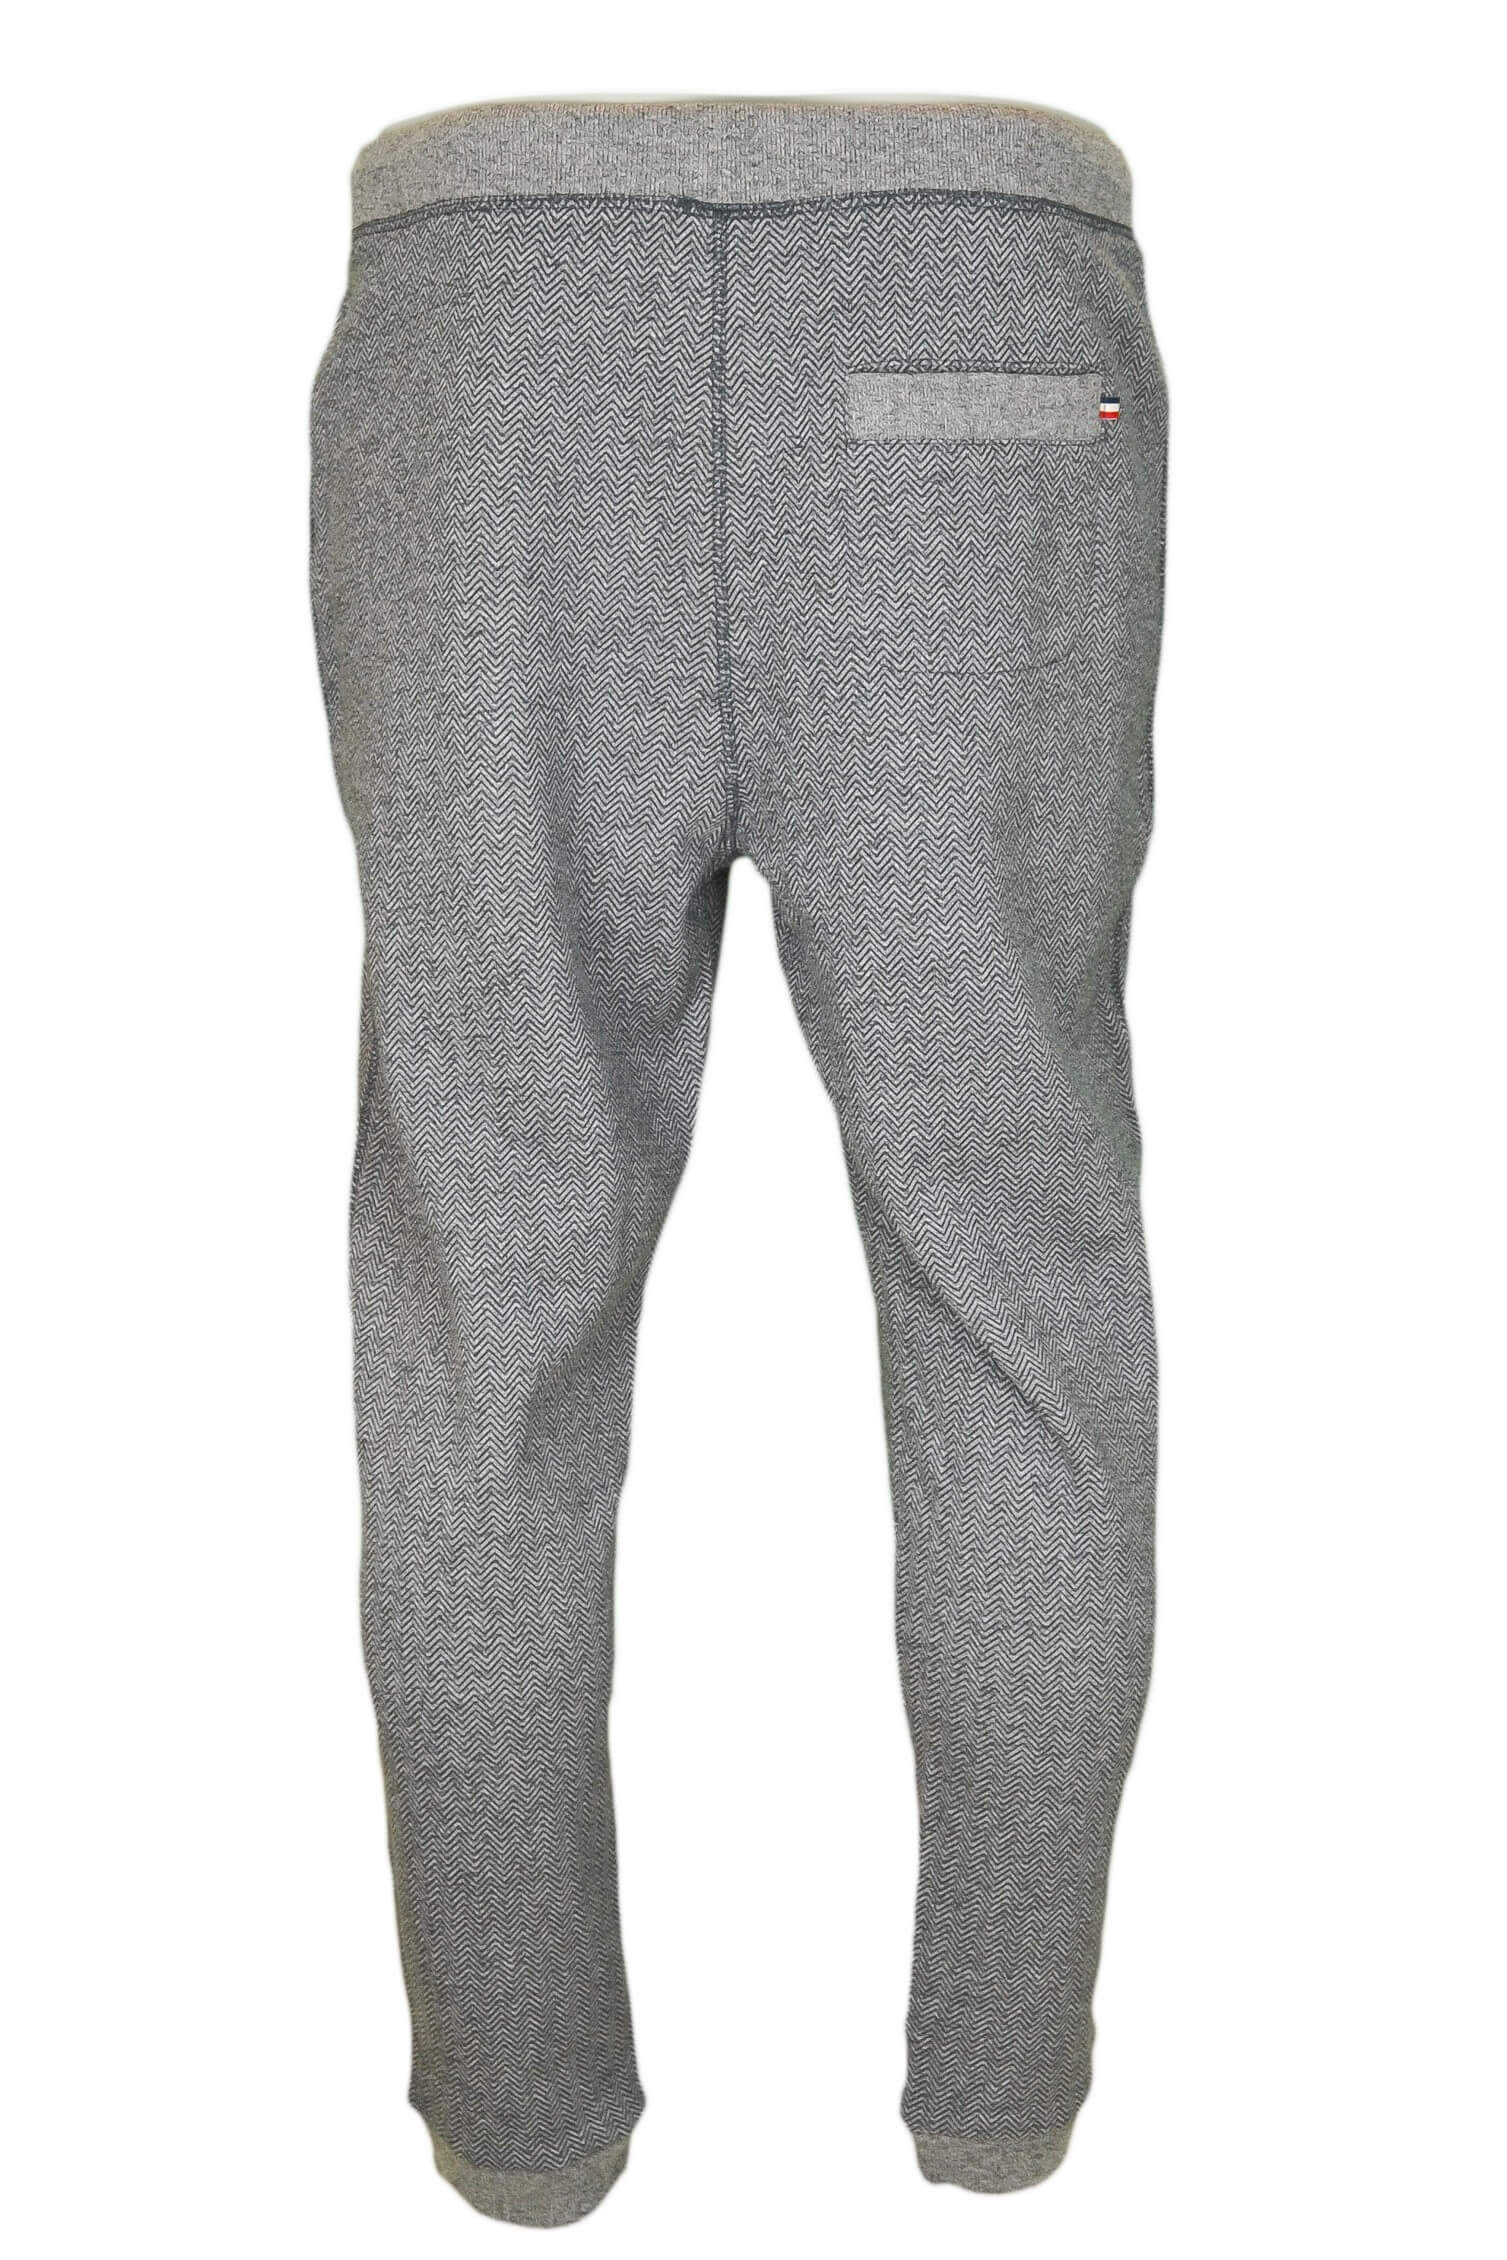 pantalon jogging tommy hilfiger gris pour homme toujours au meill. Black Bedroom Furniture Sets. Home Design Ideas